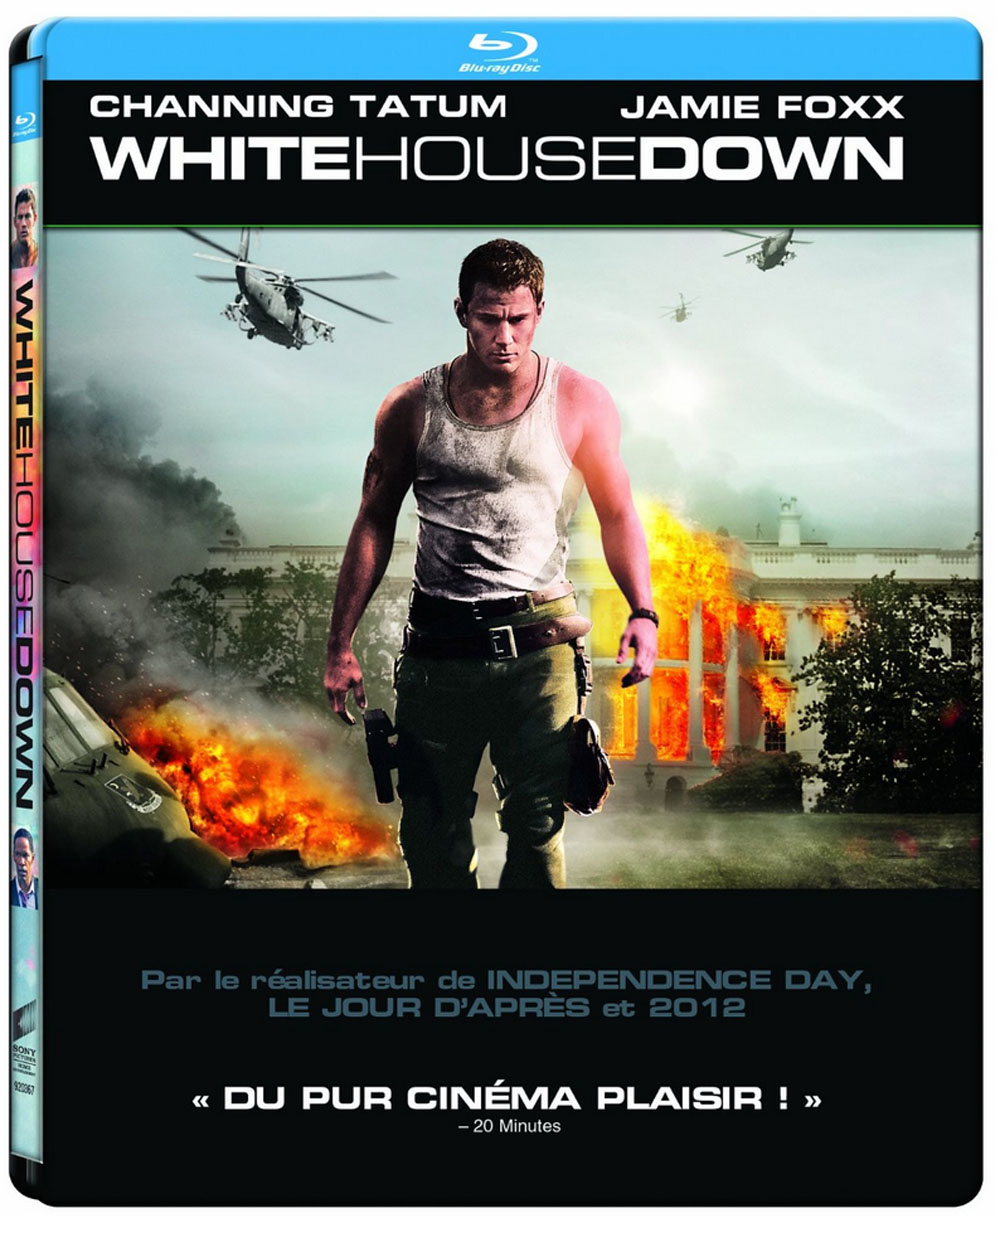 White house down bient t en blu ray dvd la maison for A la maison blanche saison 6